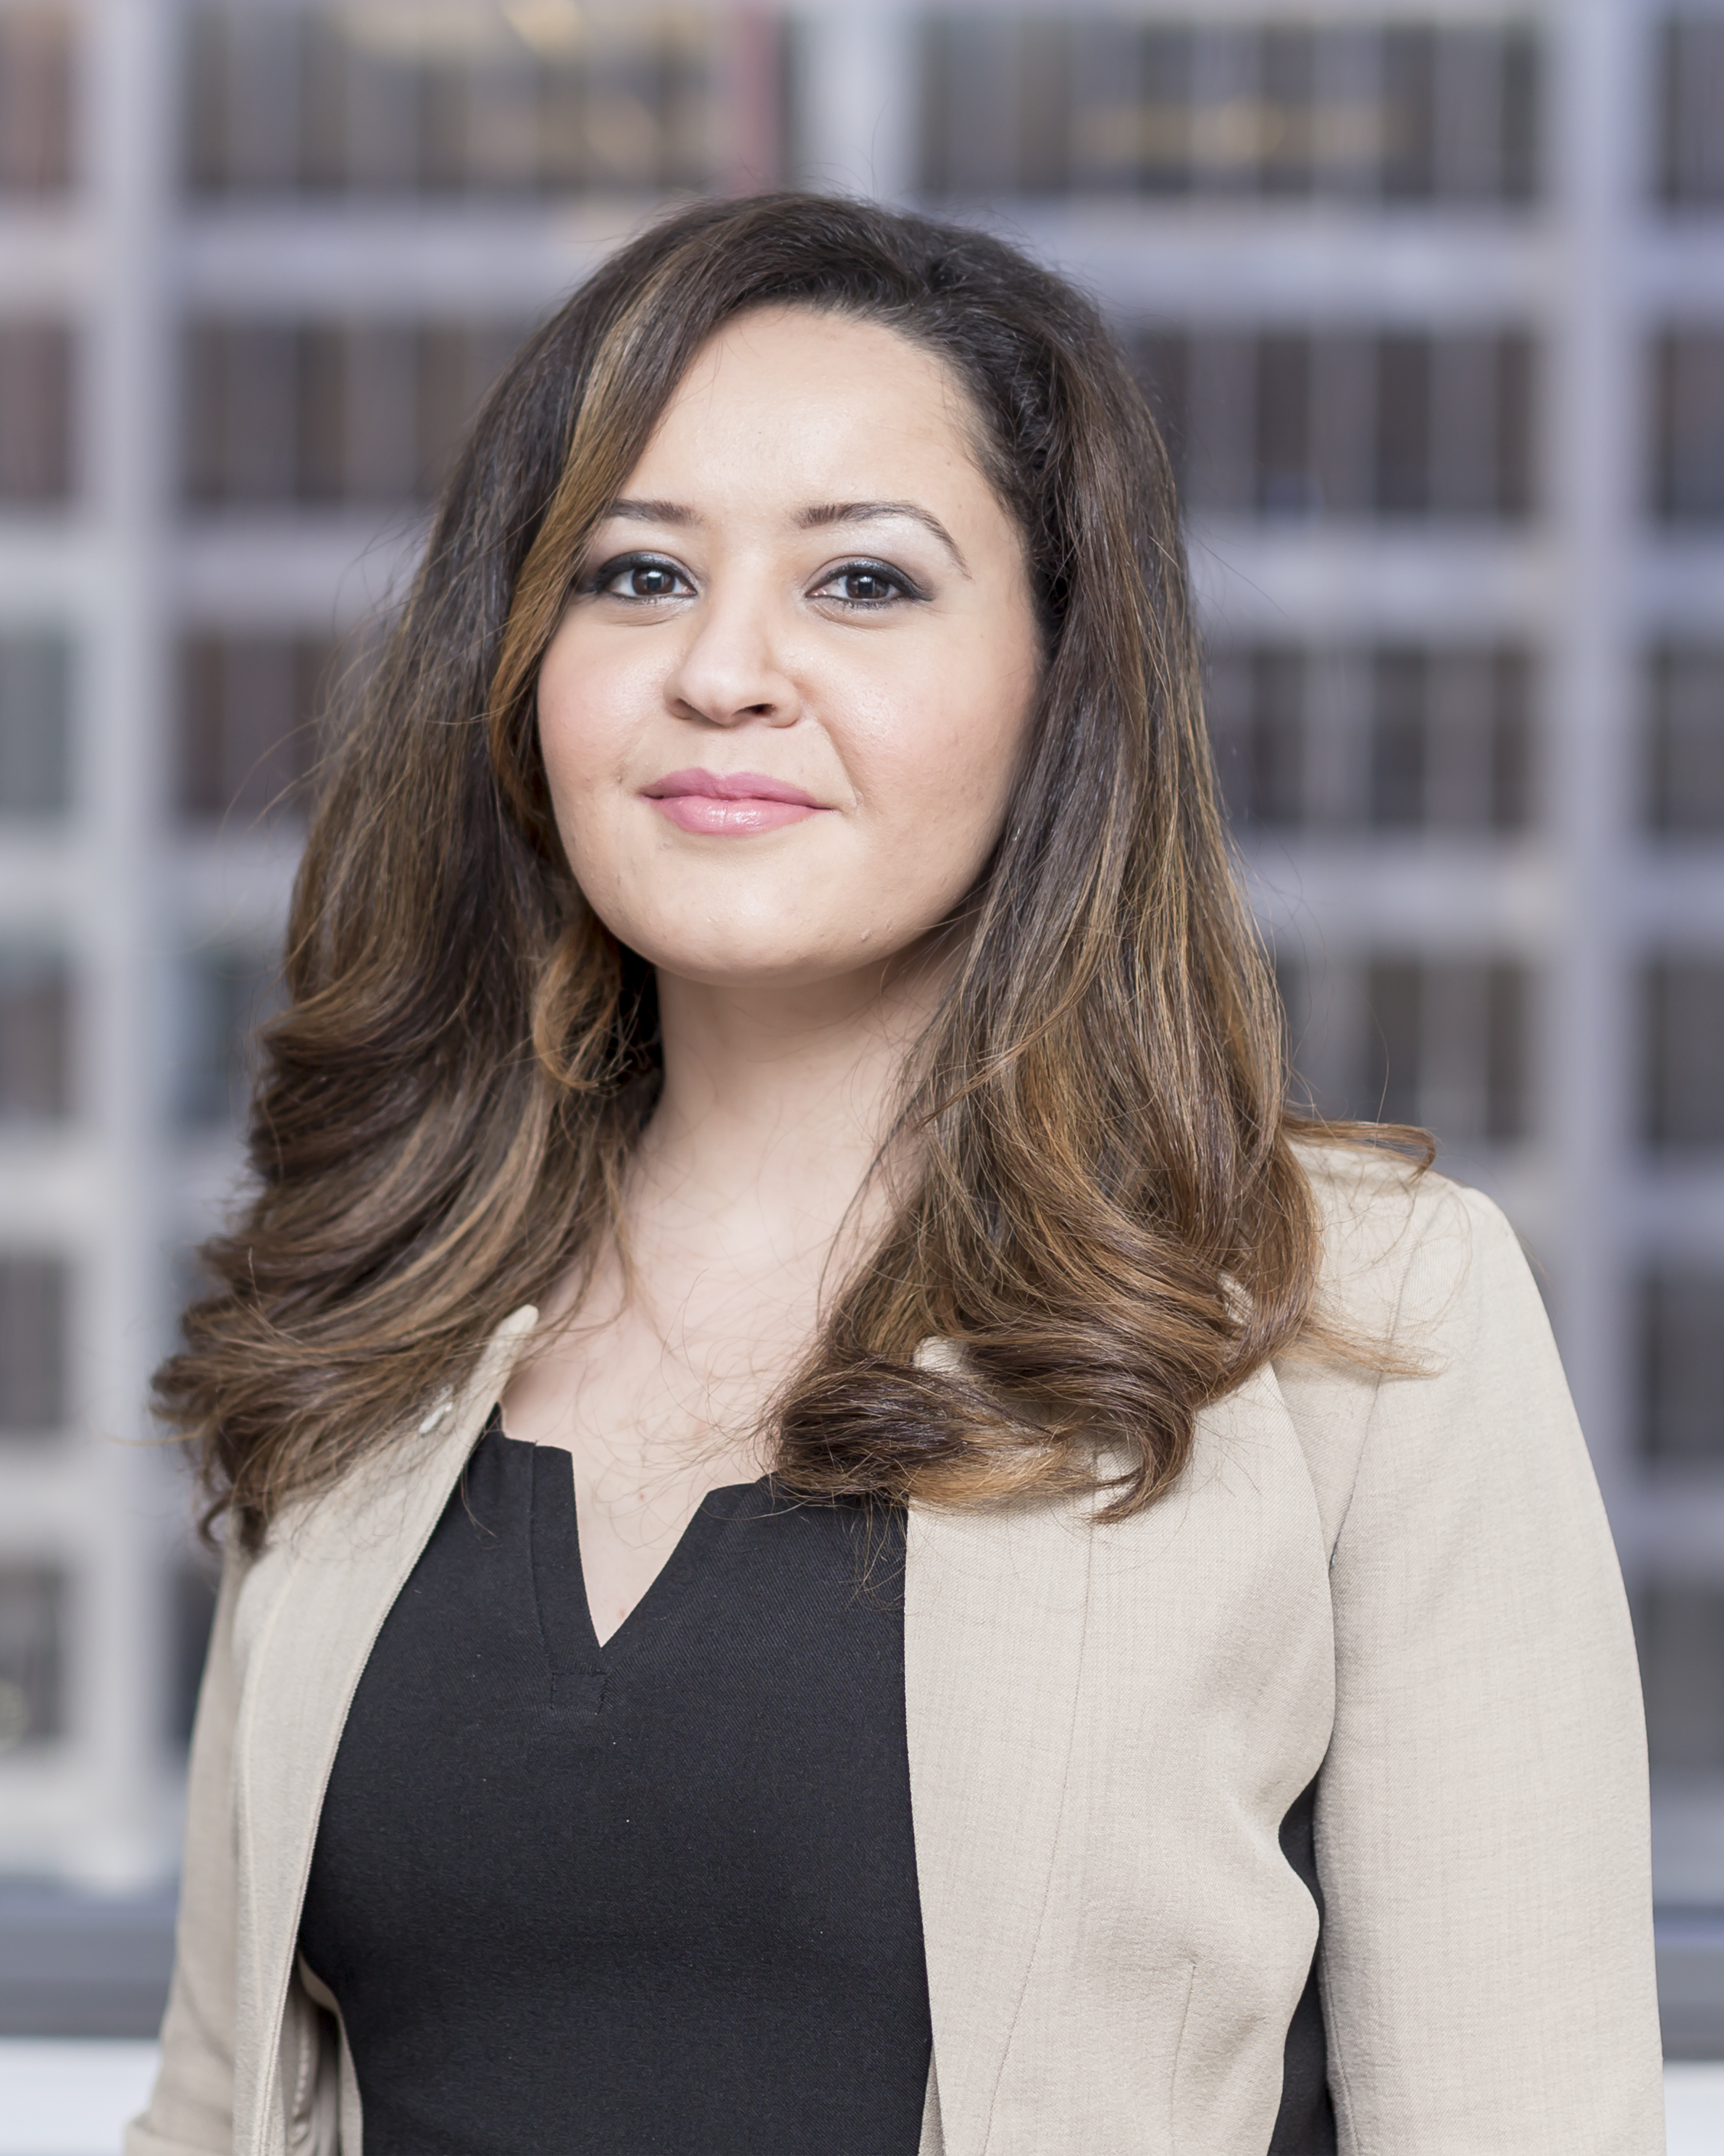 Reema Albahri, Civil Engineer in Business Development at HAKS, New York